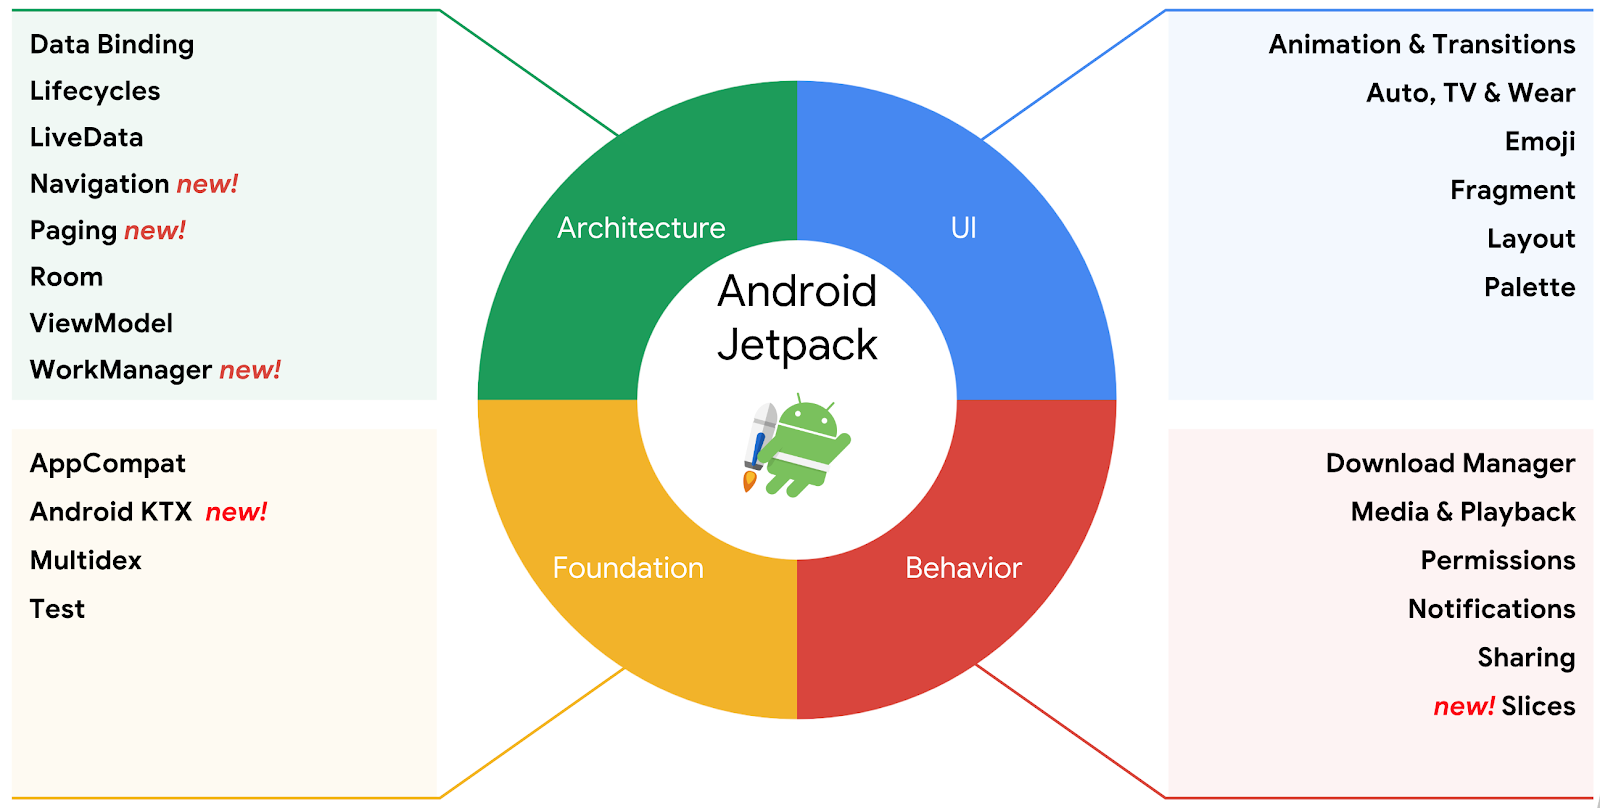 Navigator for Android: an overview of applications